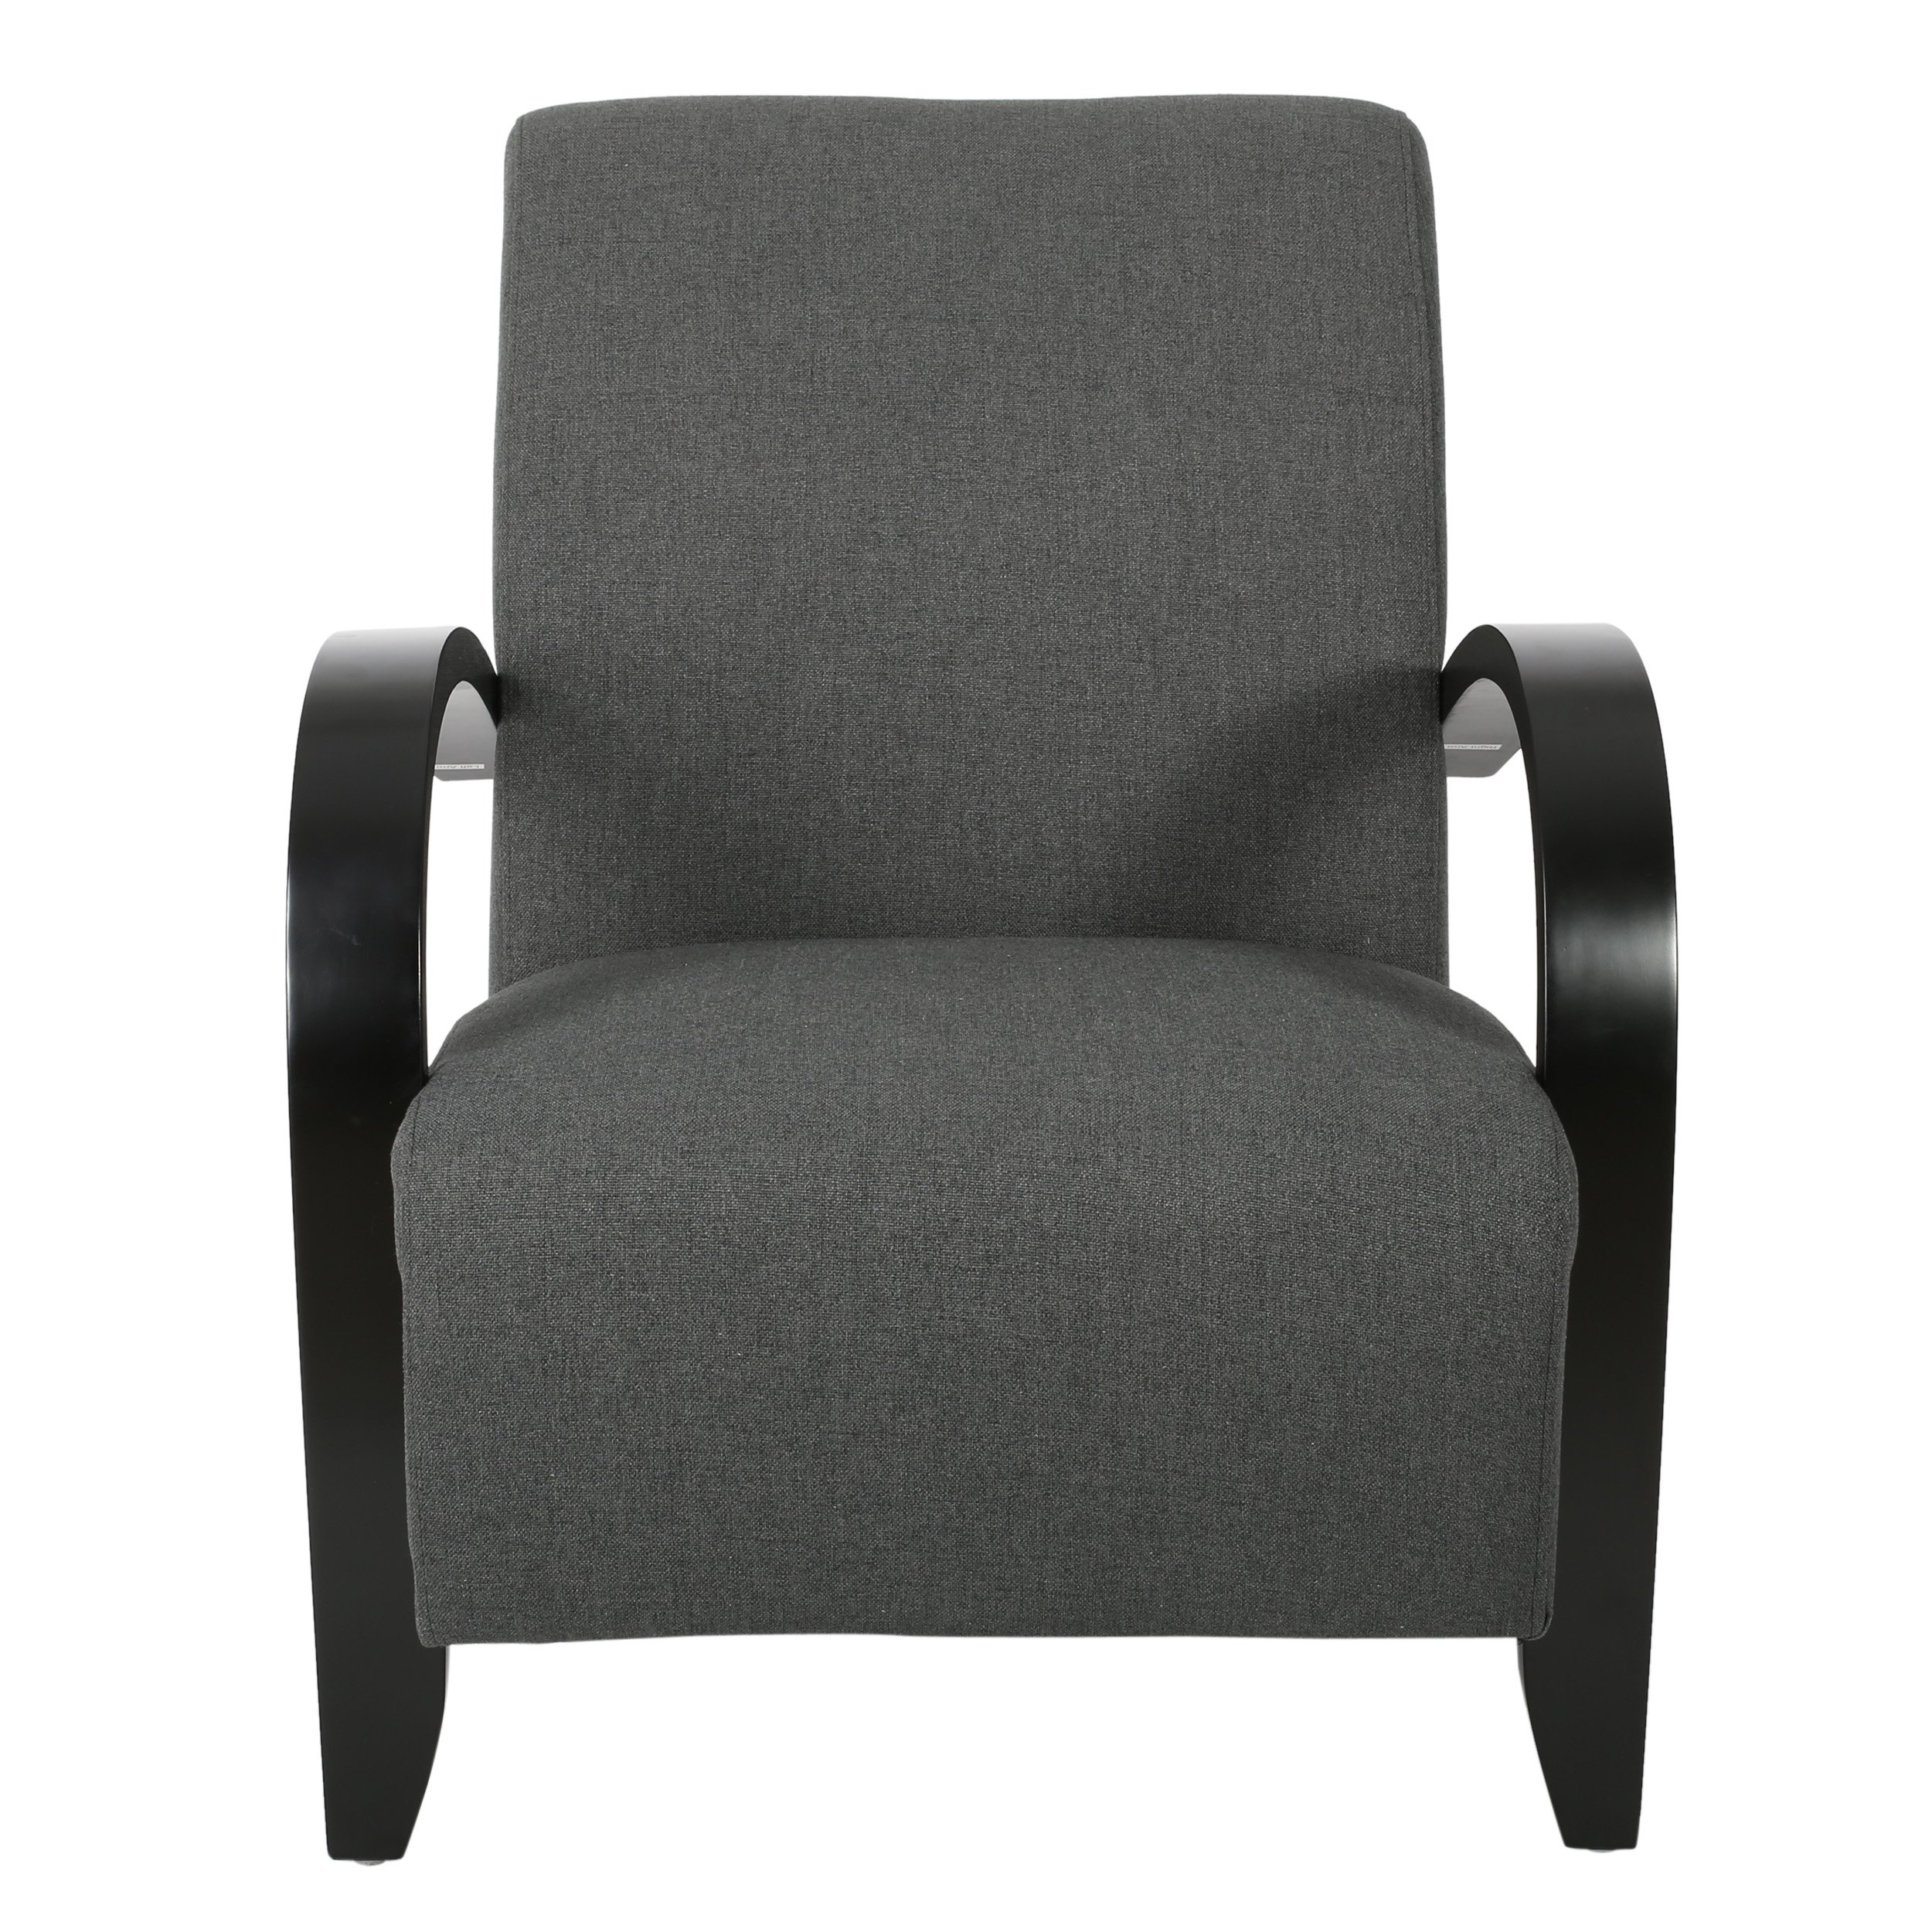 Christopher Knight Home Tobias Fabric Club Chair, Dark Gray by Christopher Knight Home